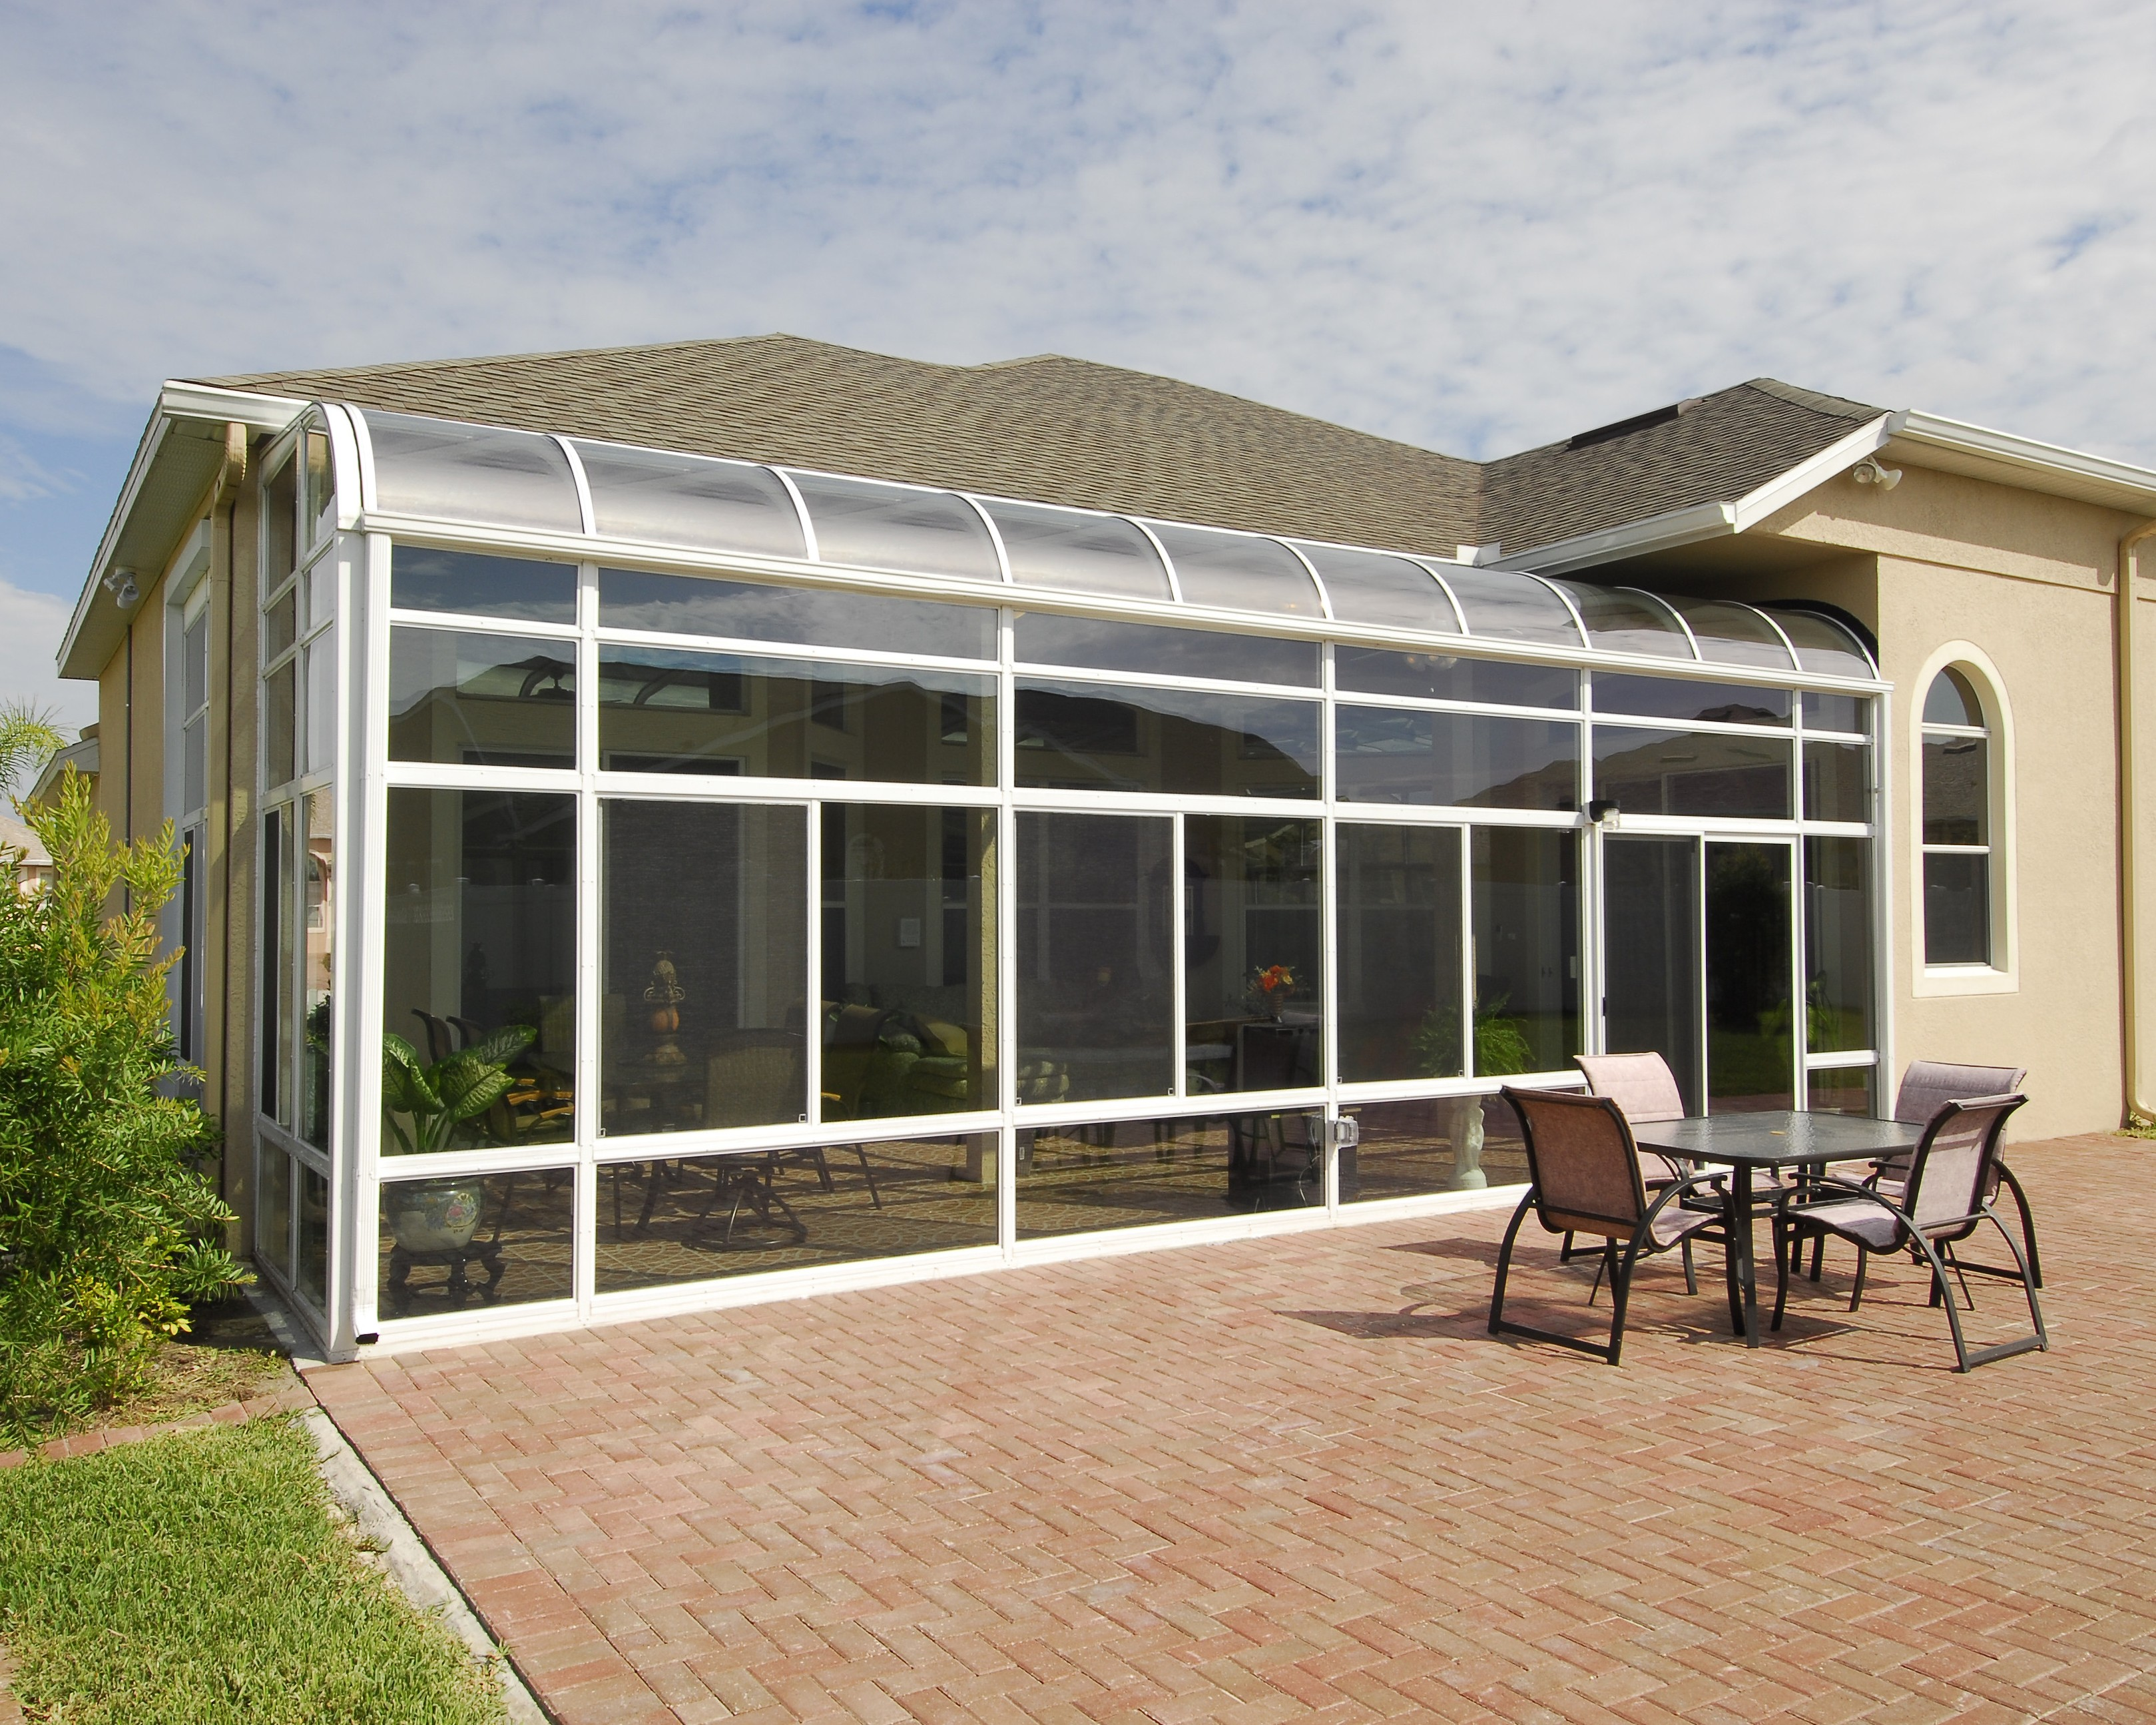 Photo Gallery 171 Four Seasons Sunrooms 613 738 8055